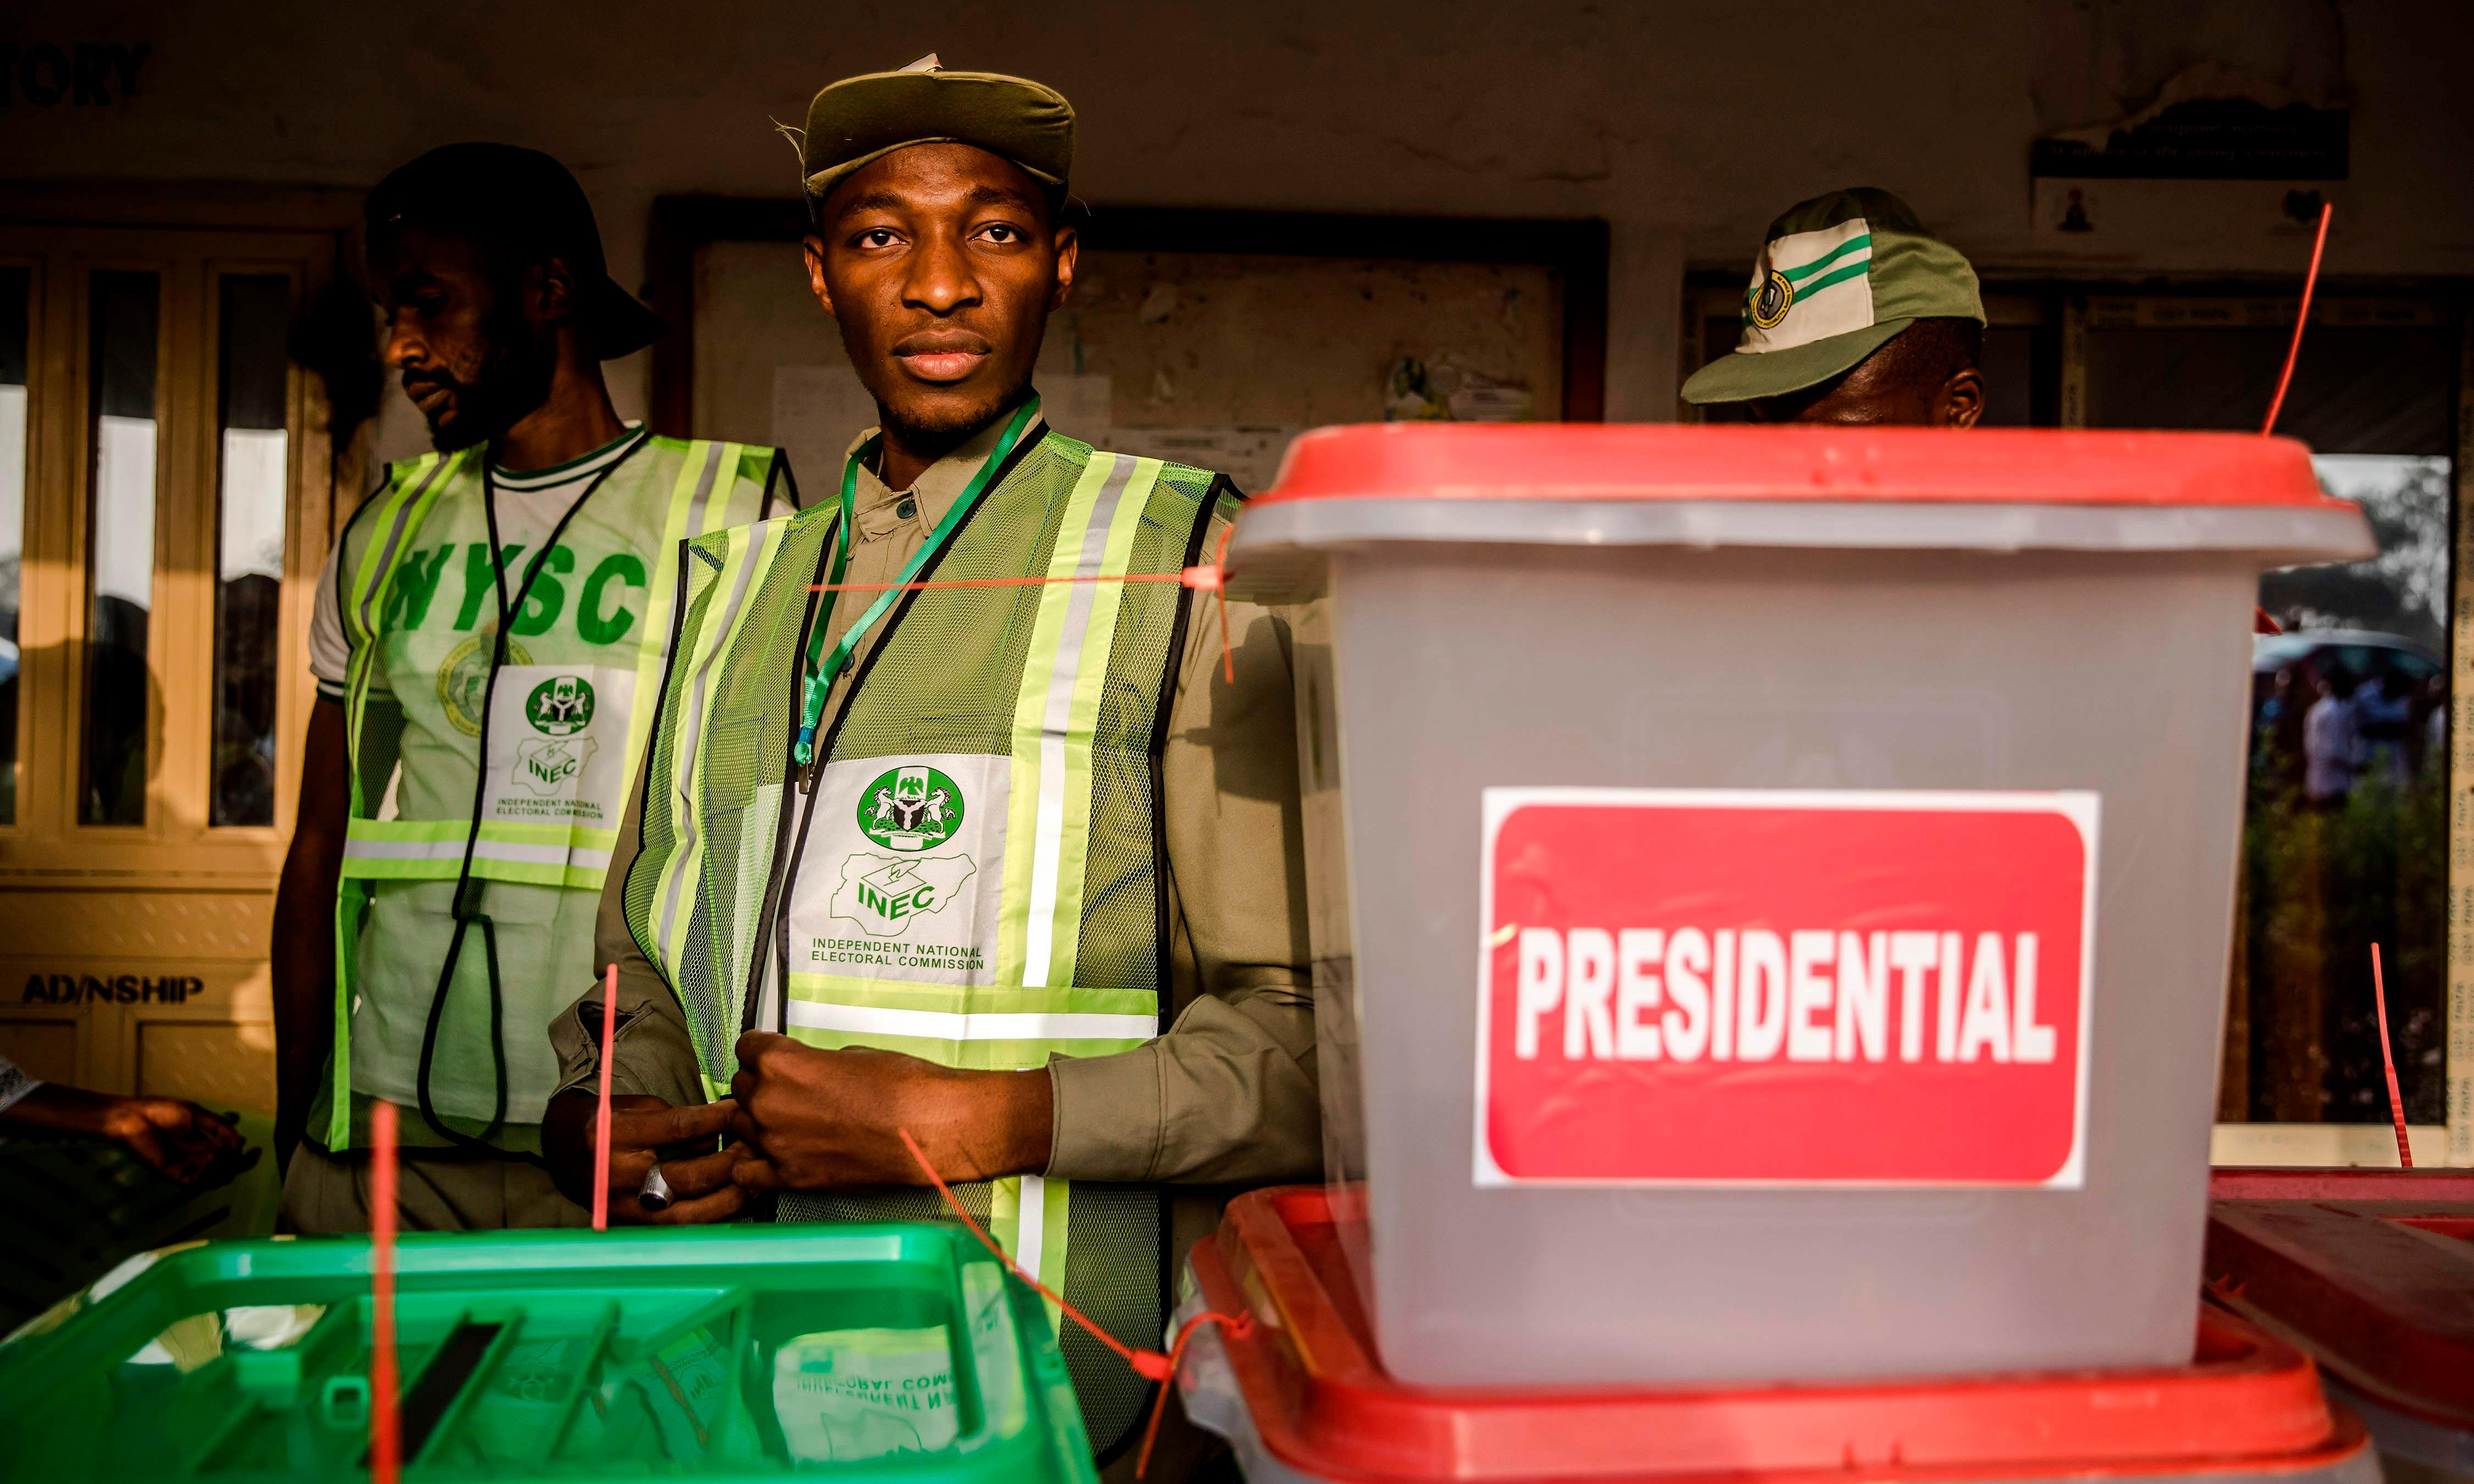 Nigeria election goes ahead amid violence and tech failures